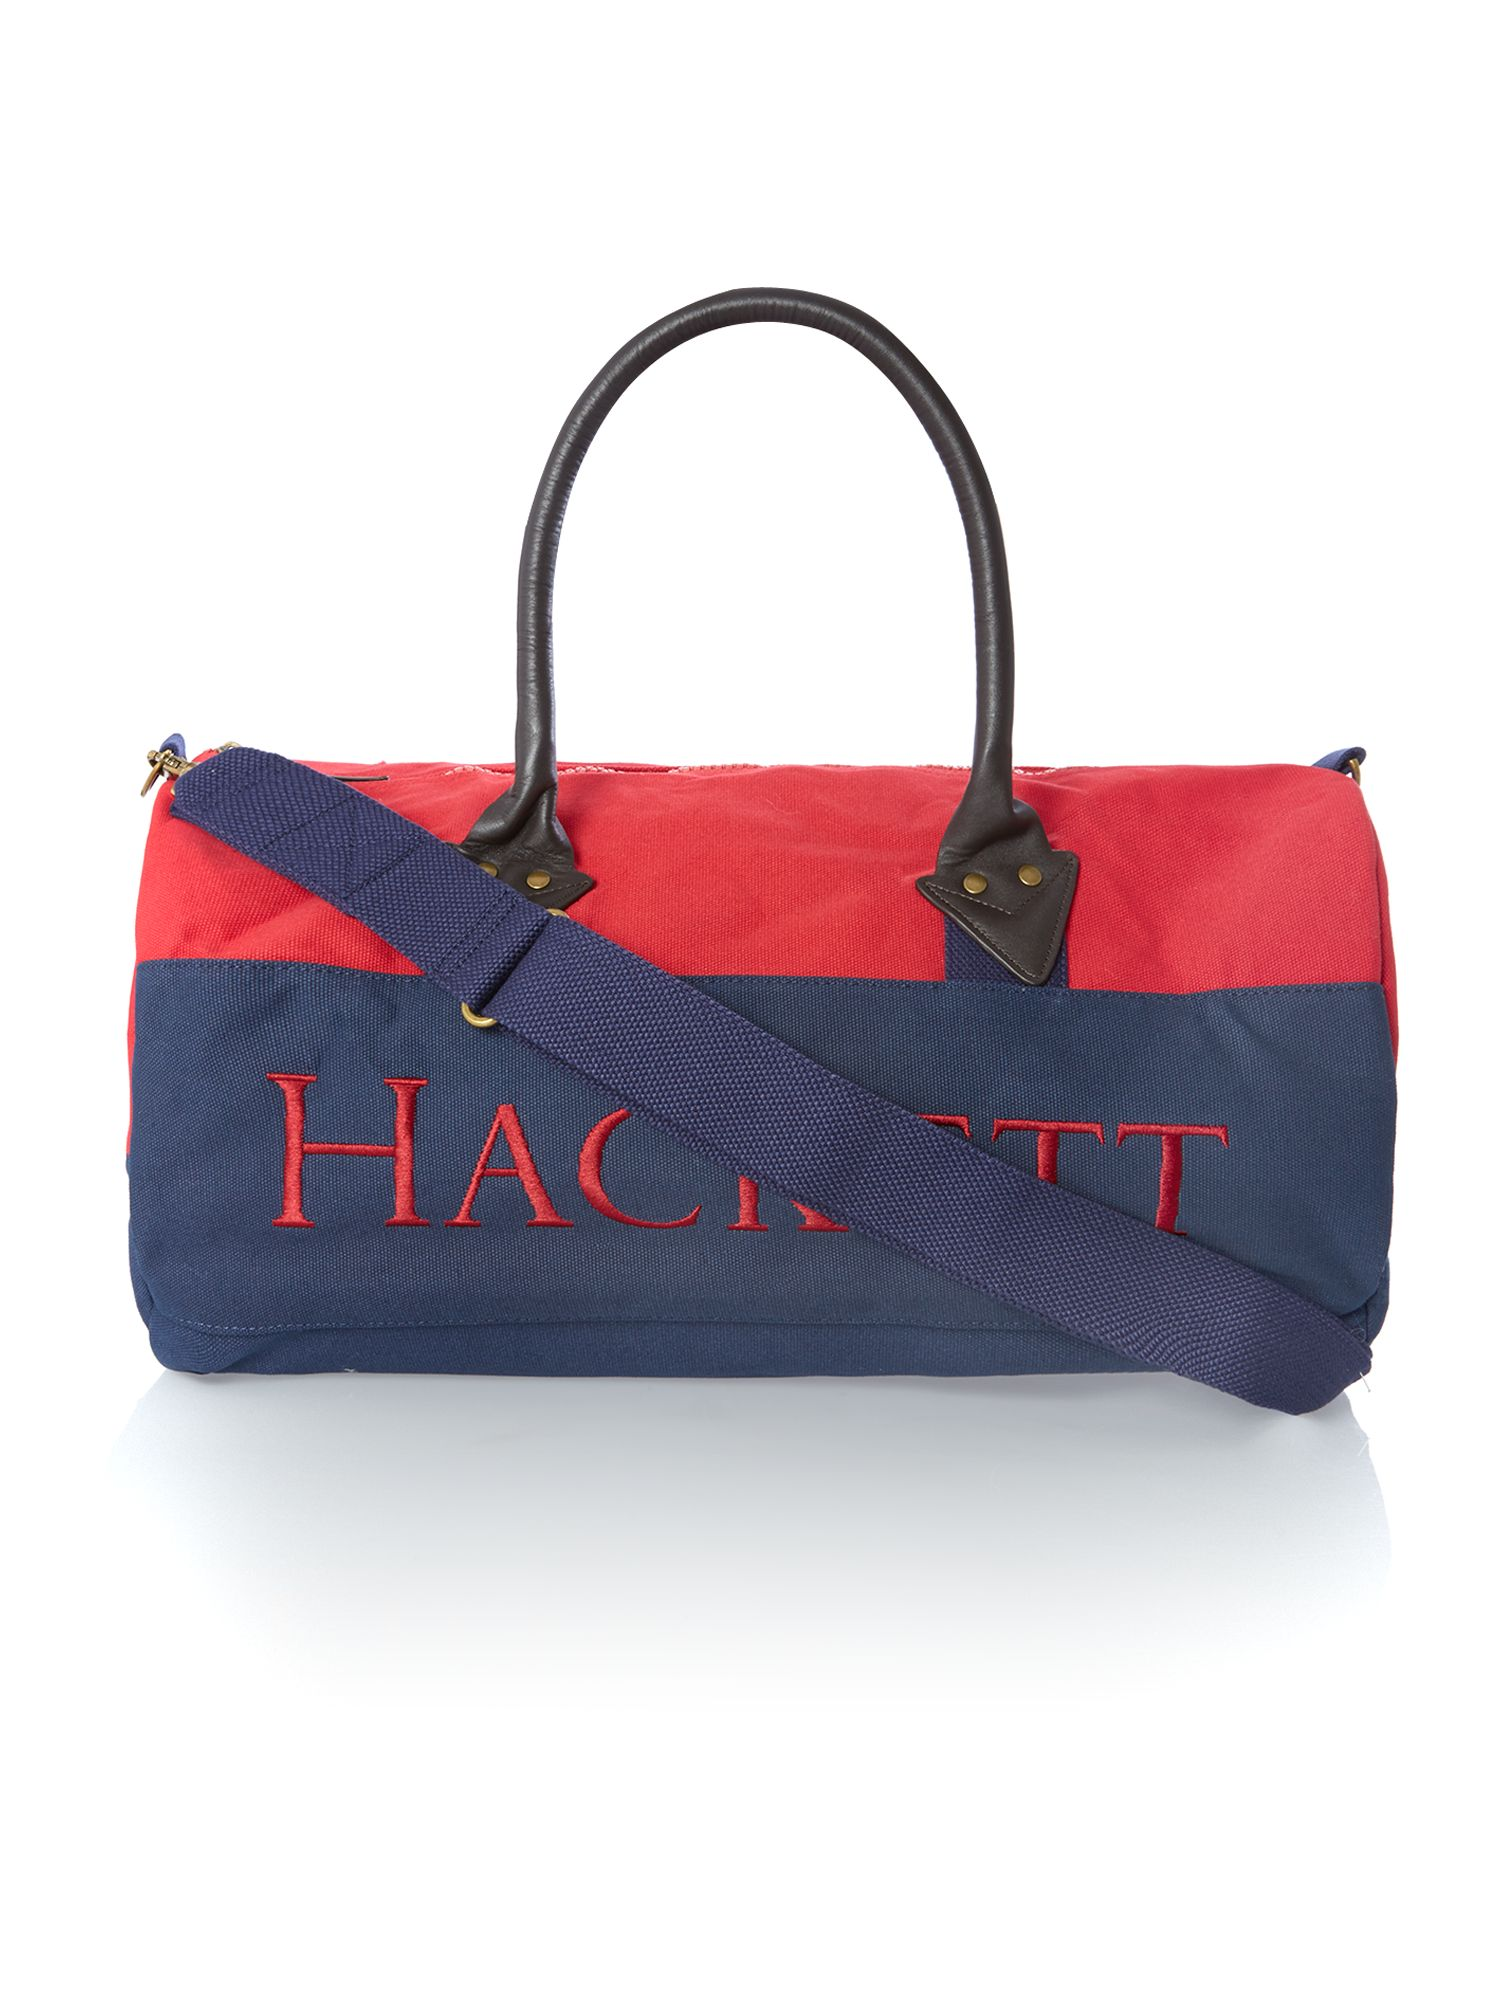 Large logo duffle bag